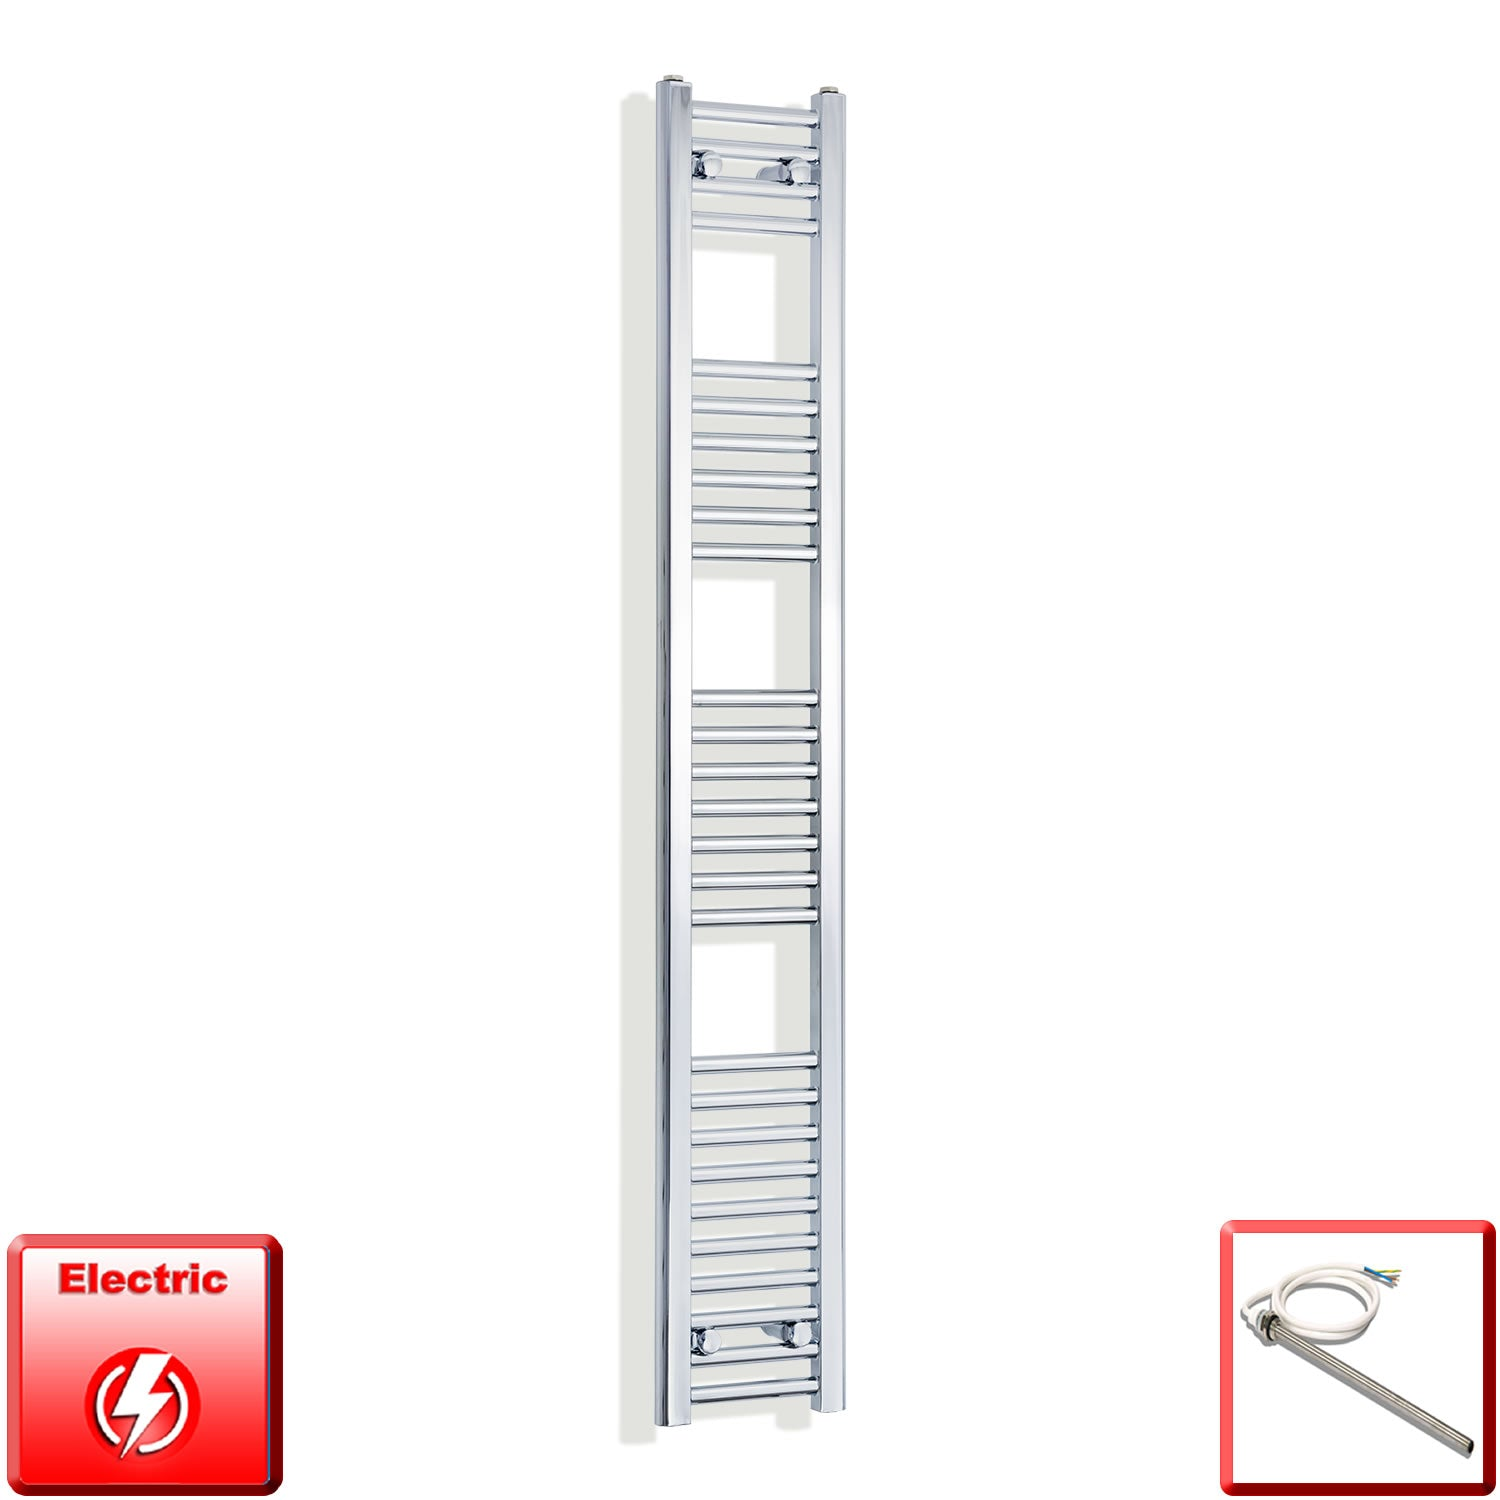 200mm Wide 1600mm High Flat Chrome Pre-Filled Electric Heated Towel Rail Radiator HTR,Single Heat Element